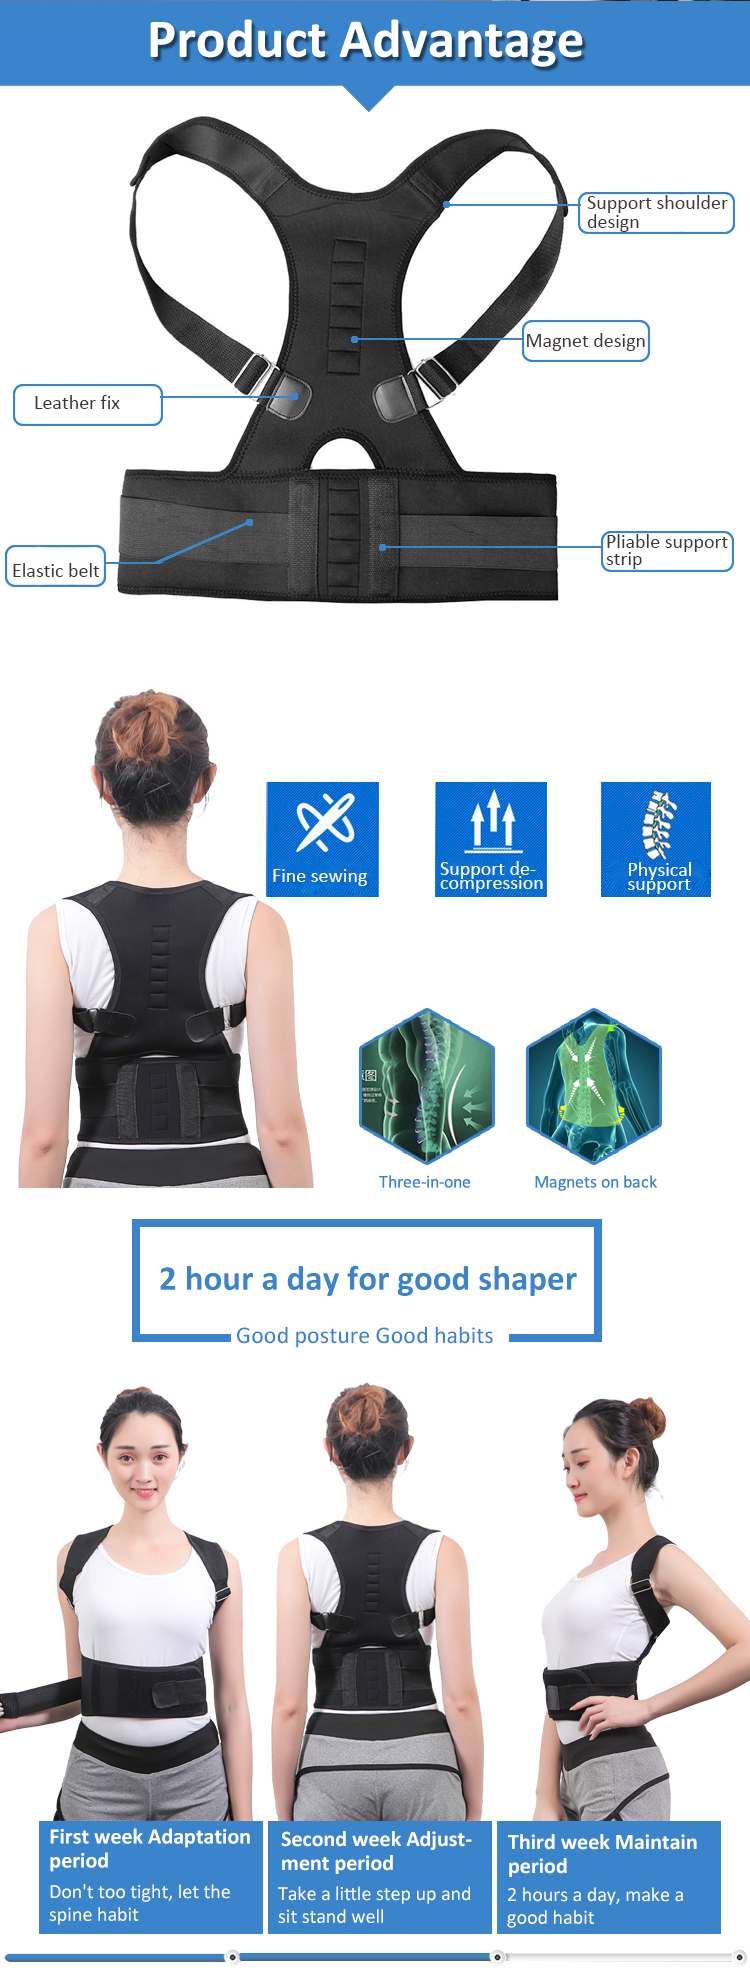 ZHIZIN OEM Magnetic posture correction belt / shoulders back posture support / back brace posture support